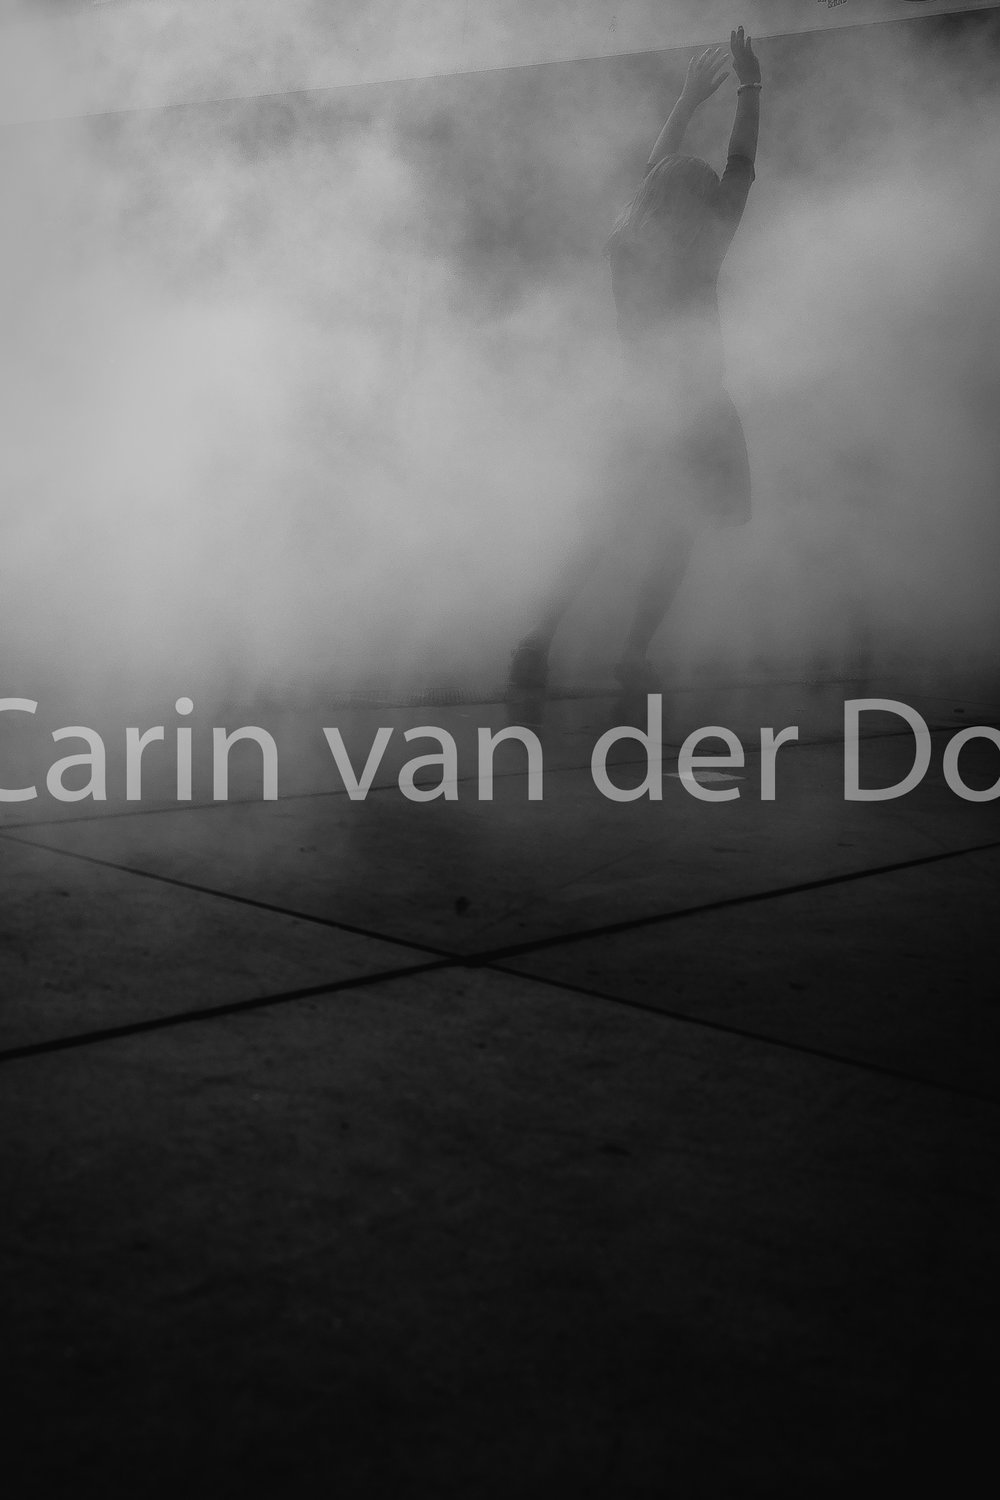 Untitled III by Carin van der Donk